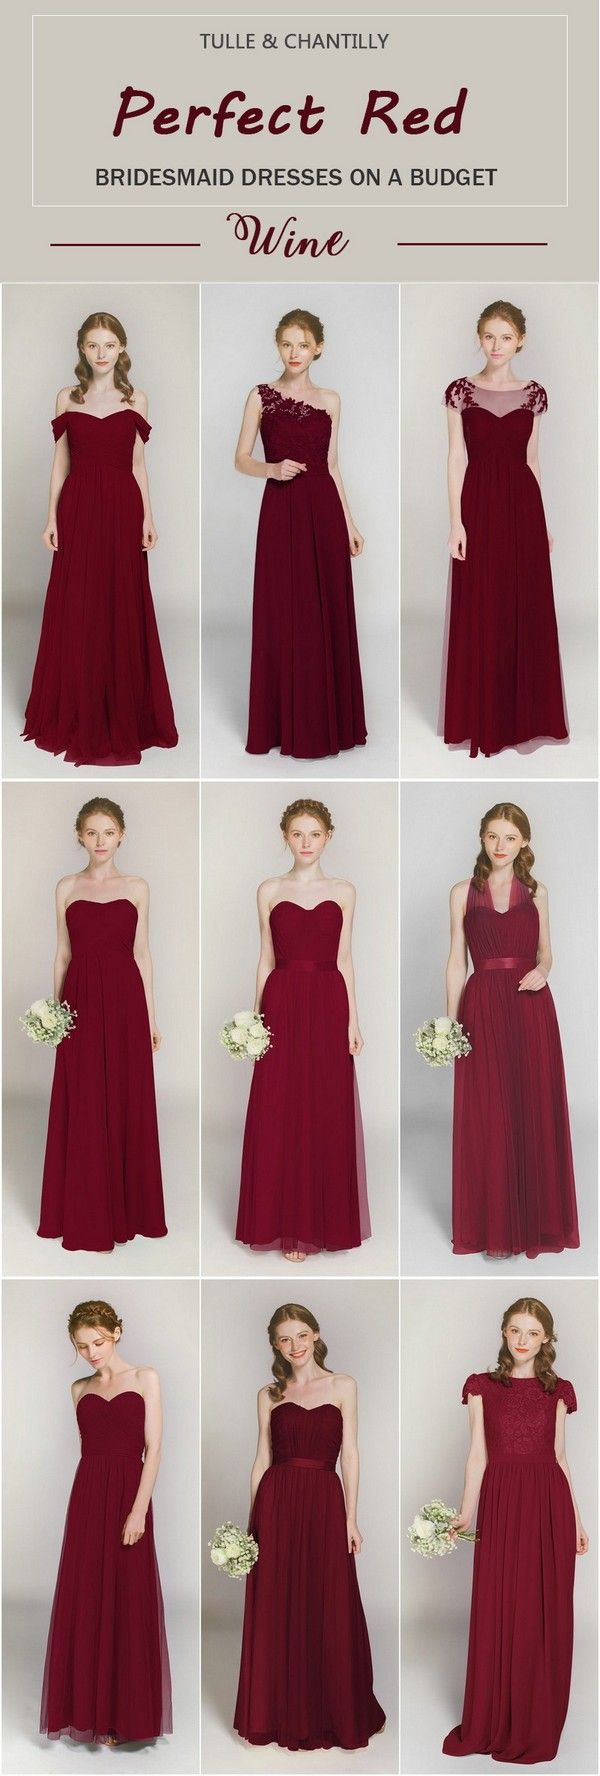 Wine Colored Bridesmaid Dresses | Burgundy Wine Maroon Red Bridesmaid Dresses Tulle Chantilly